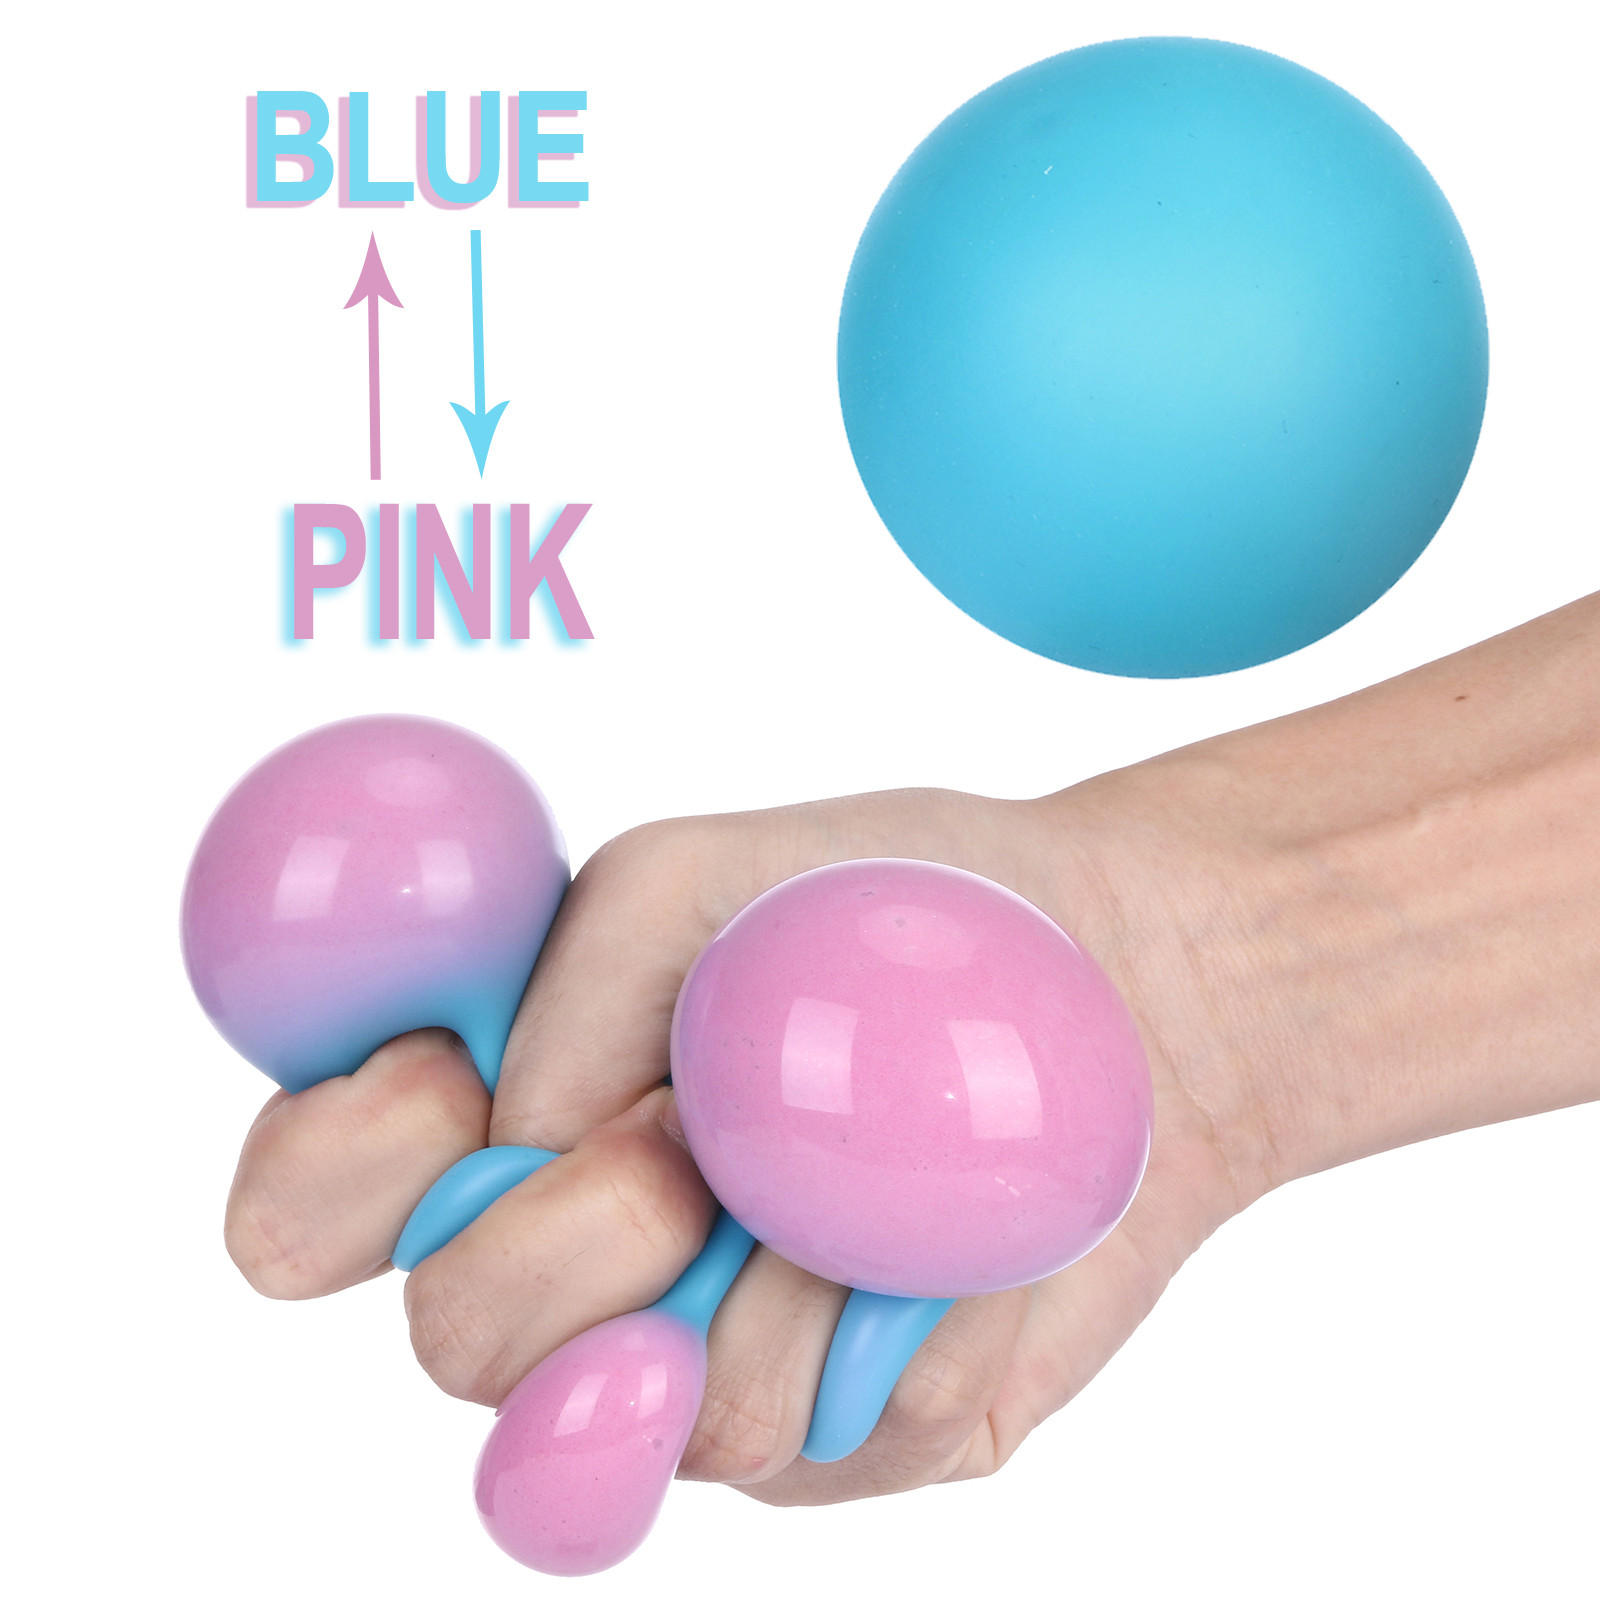 Stress Relief Squeezing Balls For Kids And Adults Toy Pressure Ball Toy Change Colour Antistress Squeeze Ball Decompression Toy img2